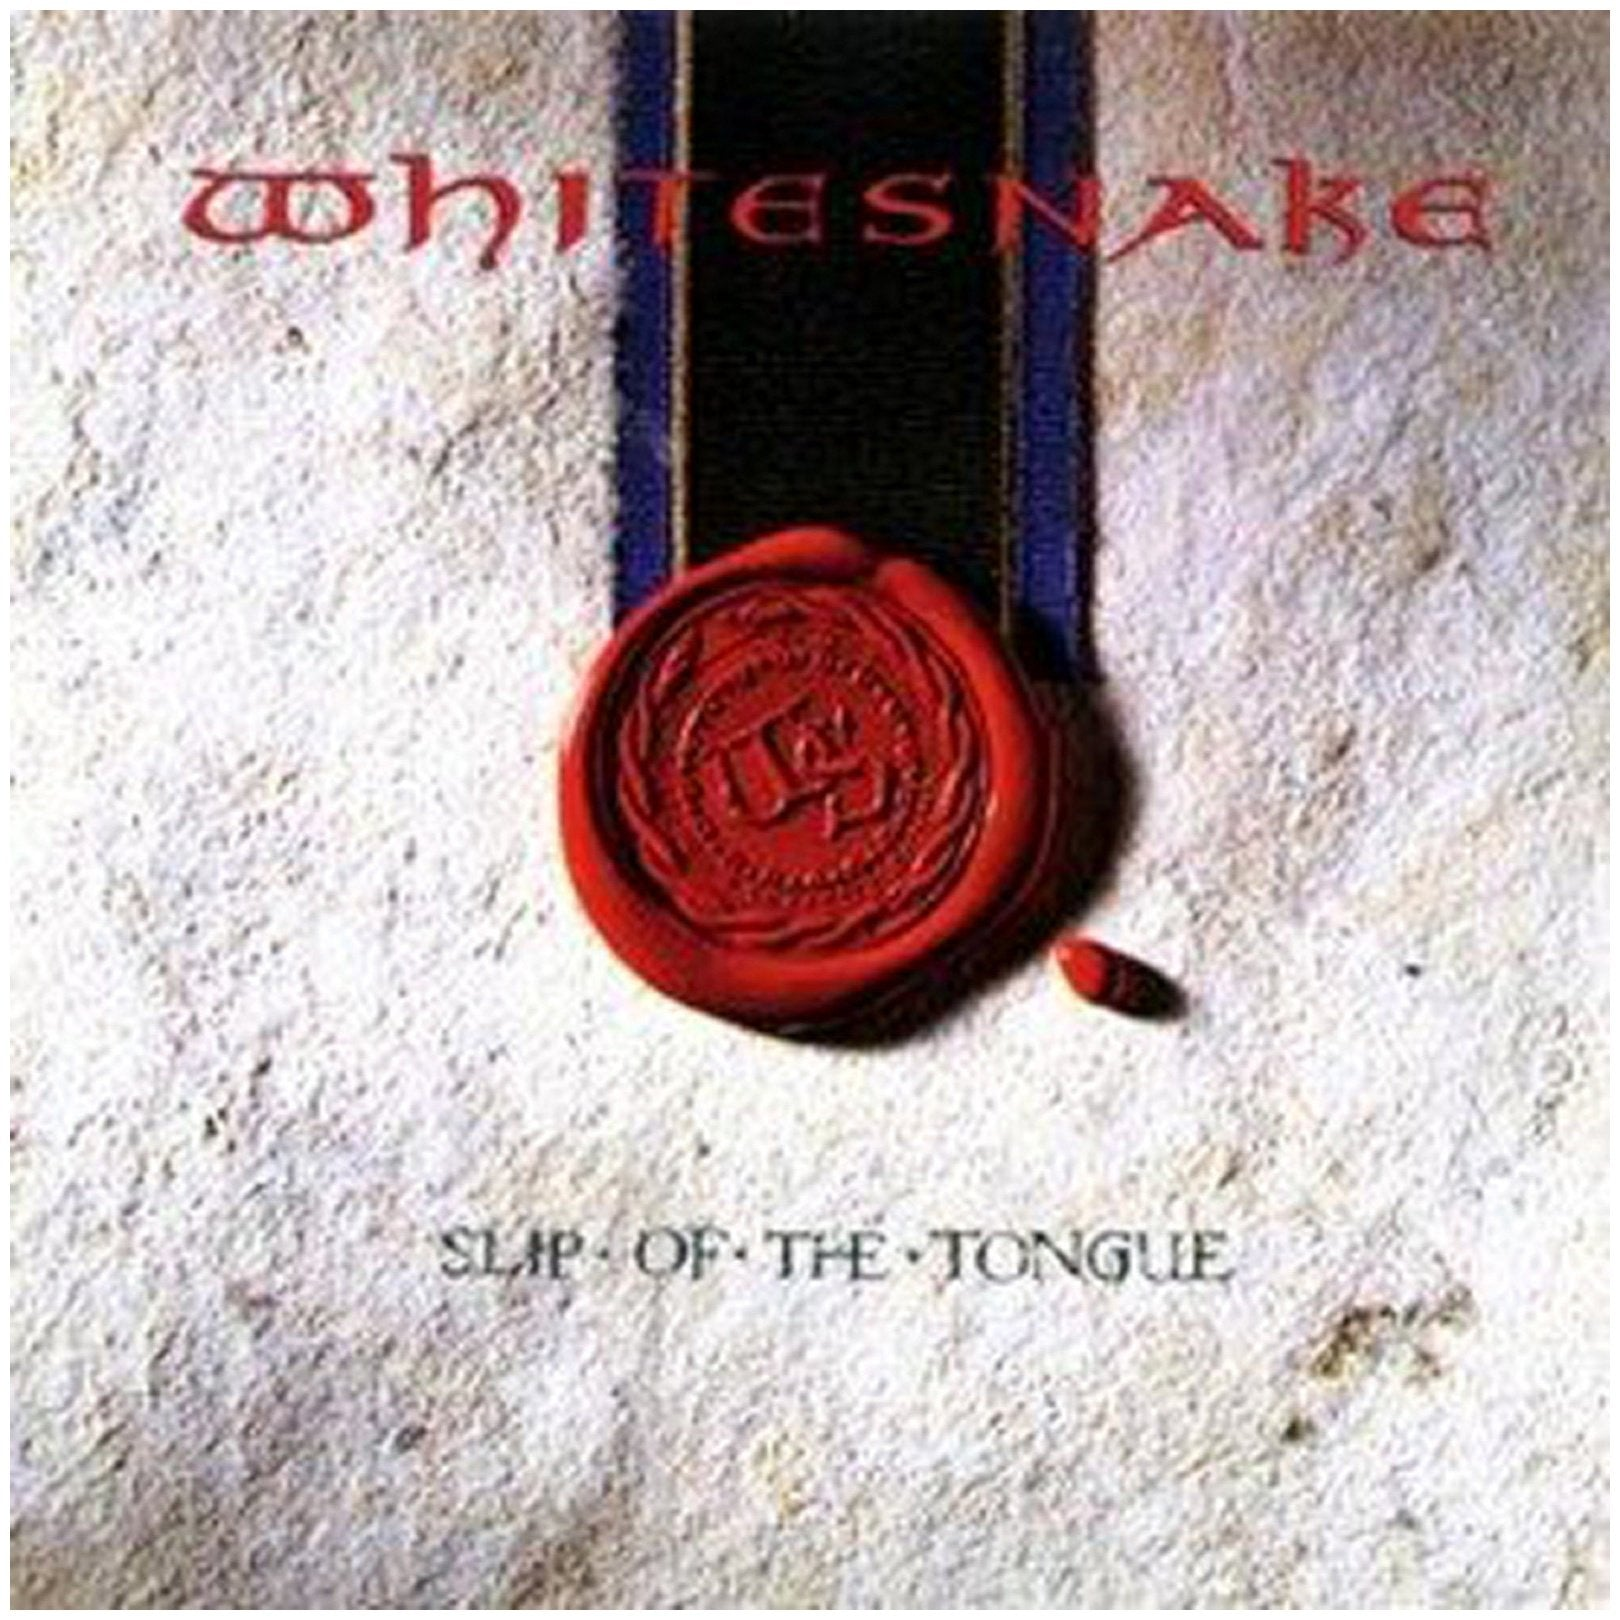 Whitesnake - Whitesnake - Slip Of The Tongue - Cd